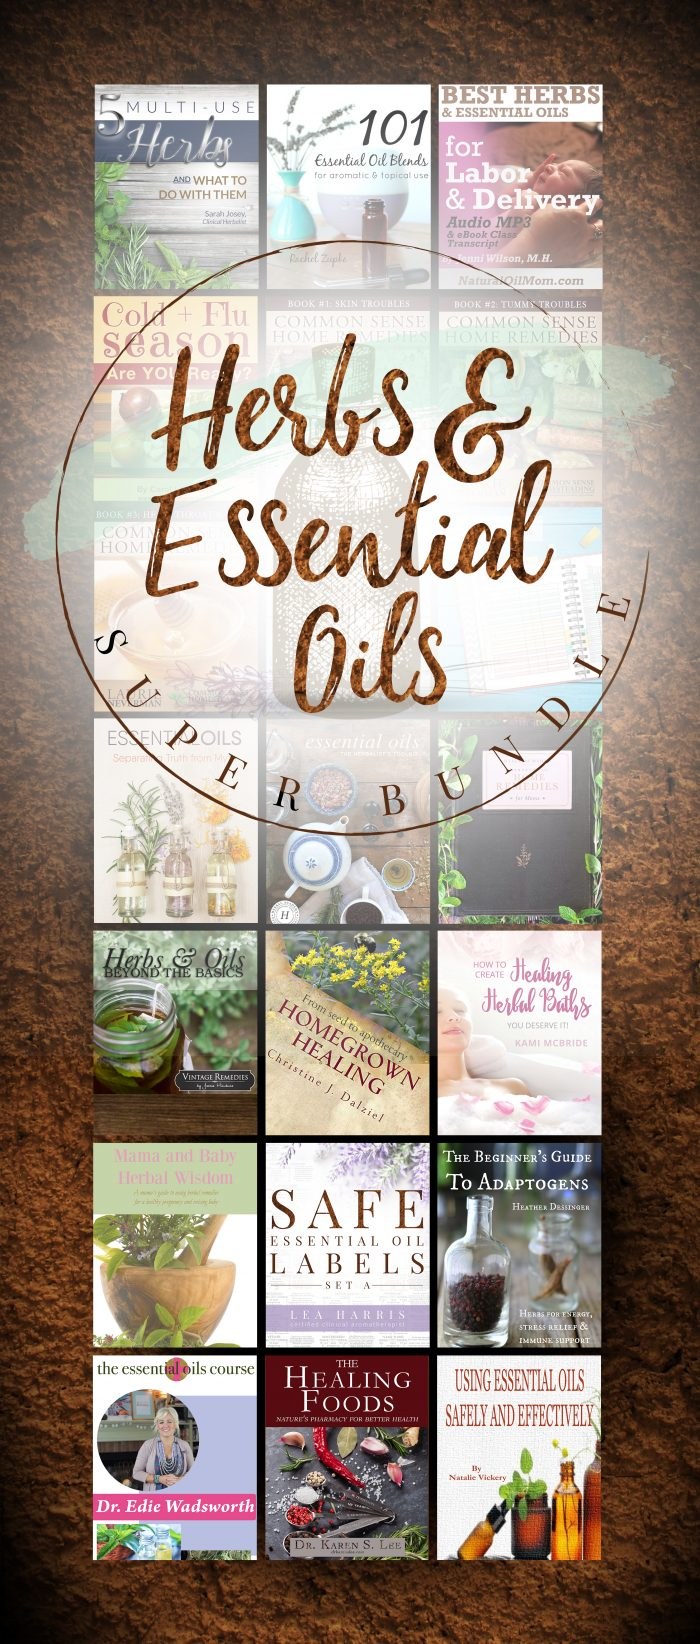 Herbs & Essential Oils Super Bundle